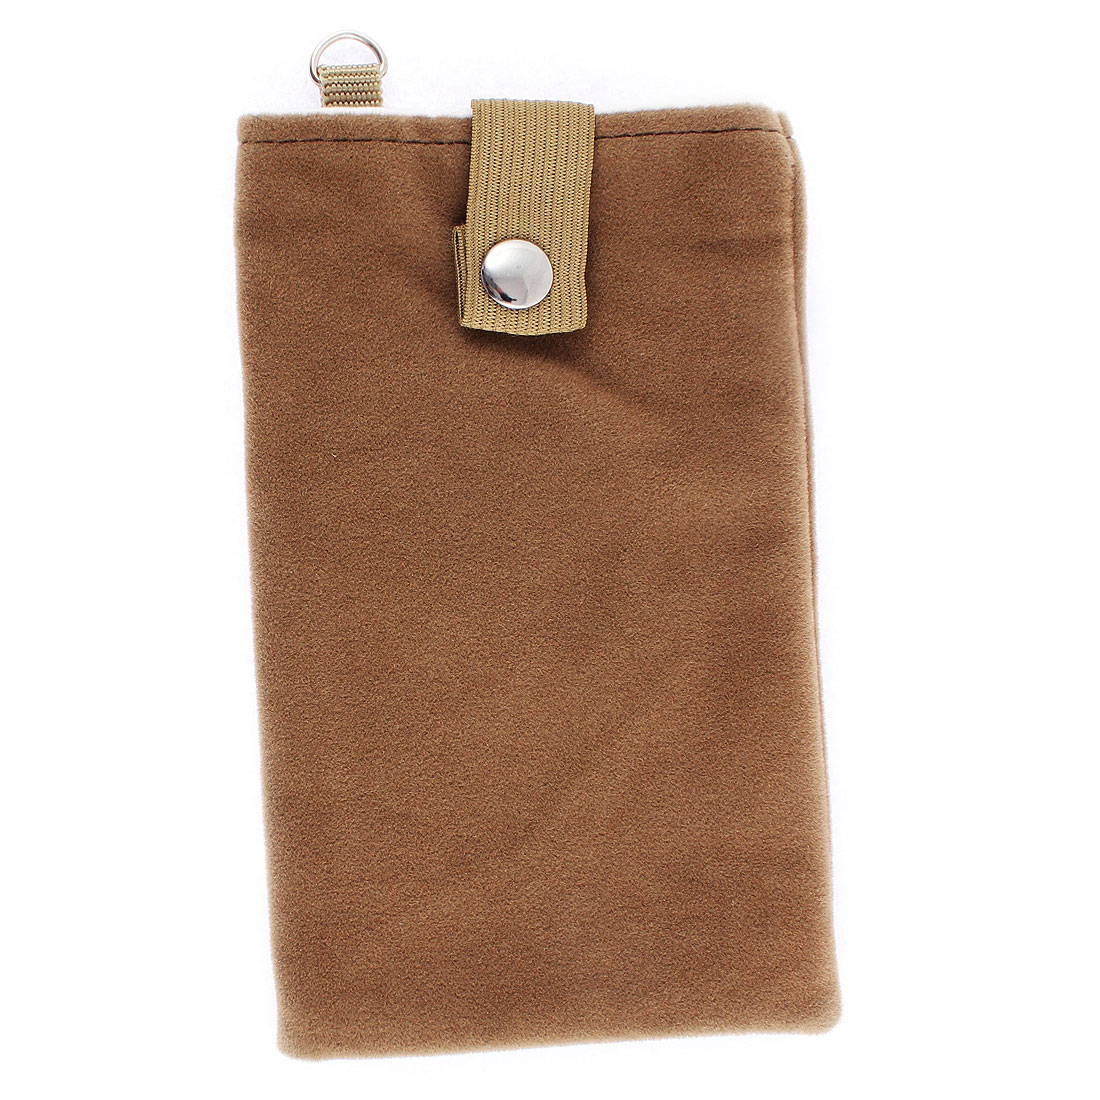 Velvet Magnetic Clasp Button Cell Phone Pouch Sleeve Bag Light Brown 16x9.5cm